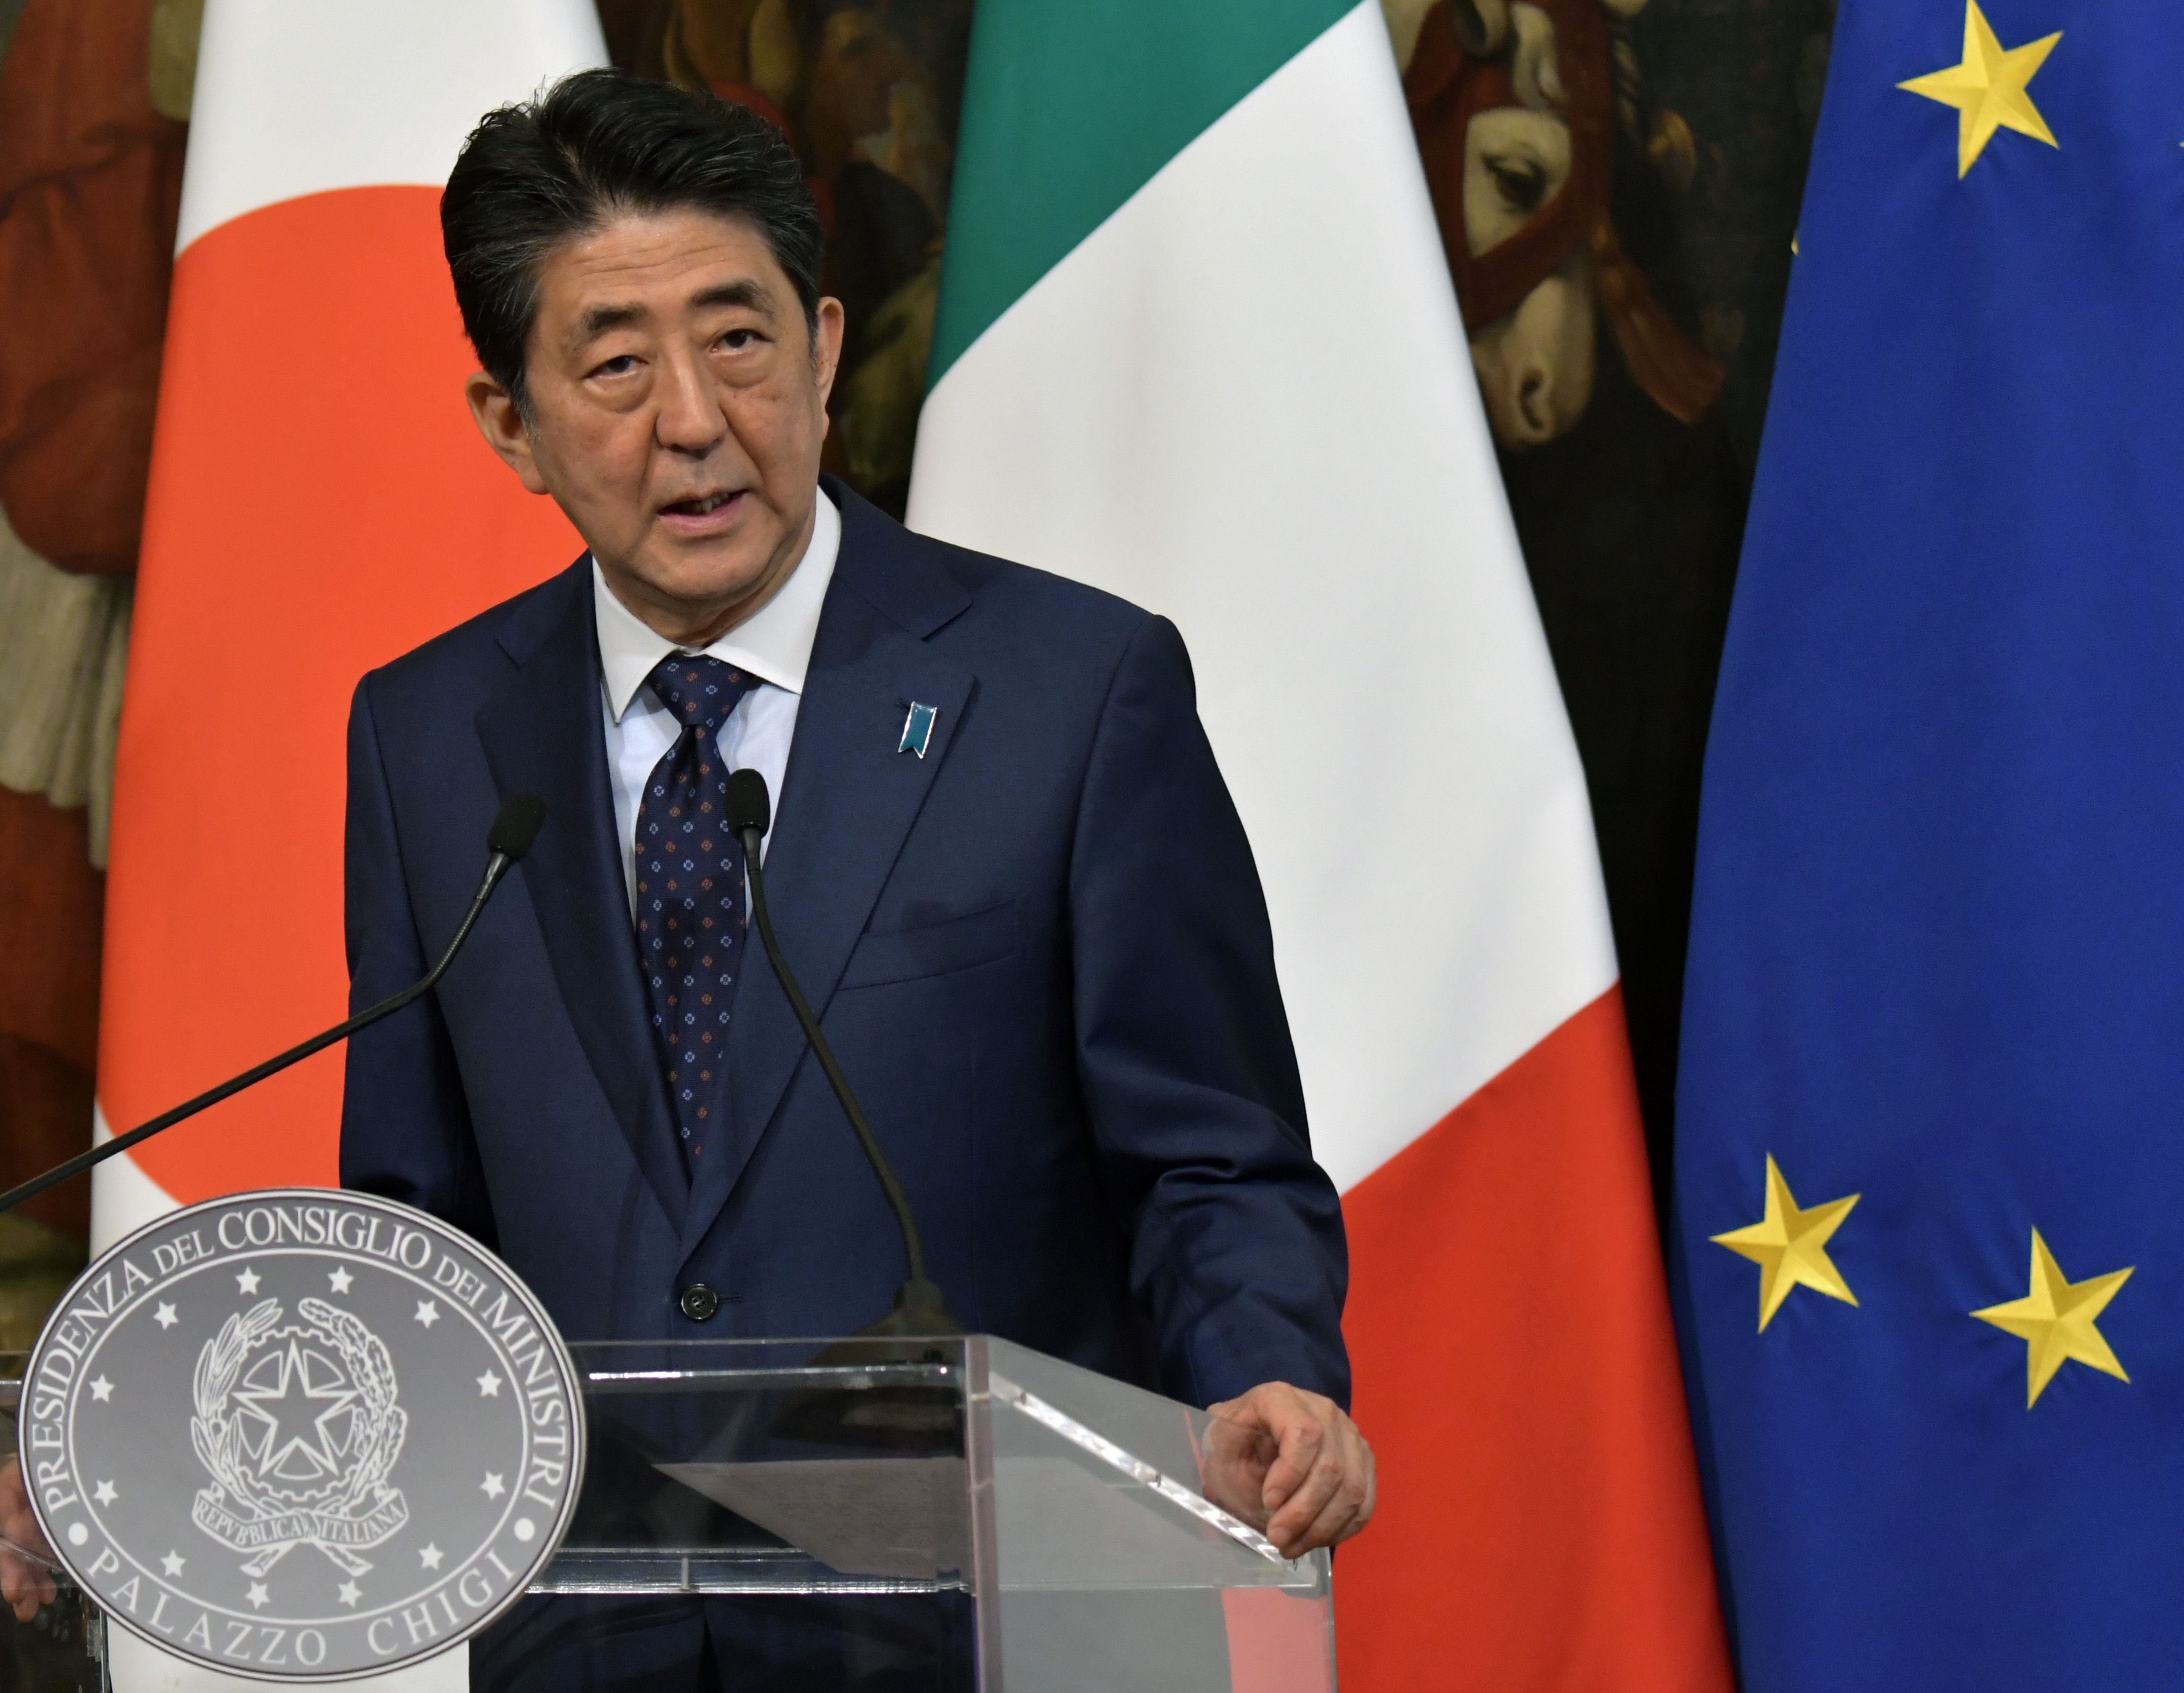 Japan's Prime Minister Shinzo Abe delivers a speech during a joint press conference with Italian Prime Minister following their meeting at the Palazzo Chigi, in Rome, on April 24, 2019. (TIZIANA FABI/AFP/Getty Images)